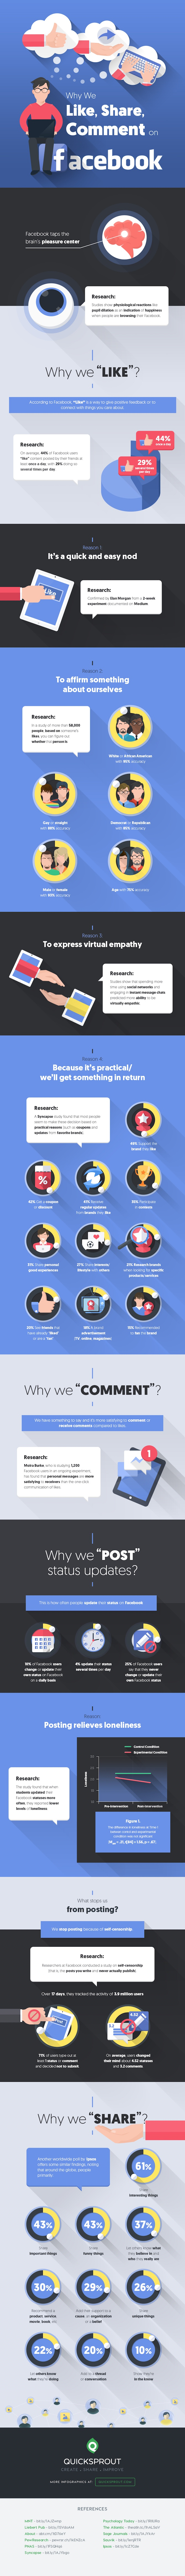 Γιατί κάνουμε like,Share,Comment, στο Facebook-infographic